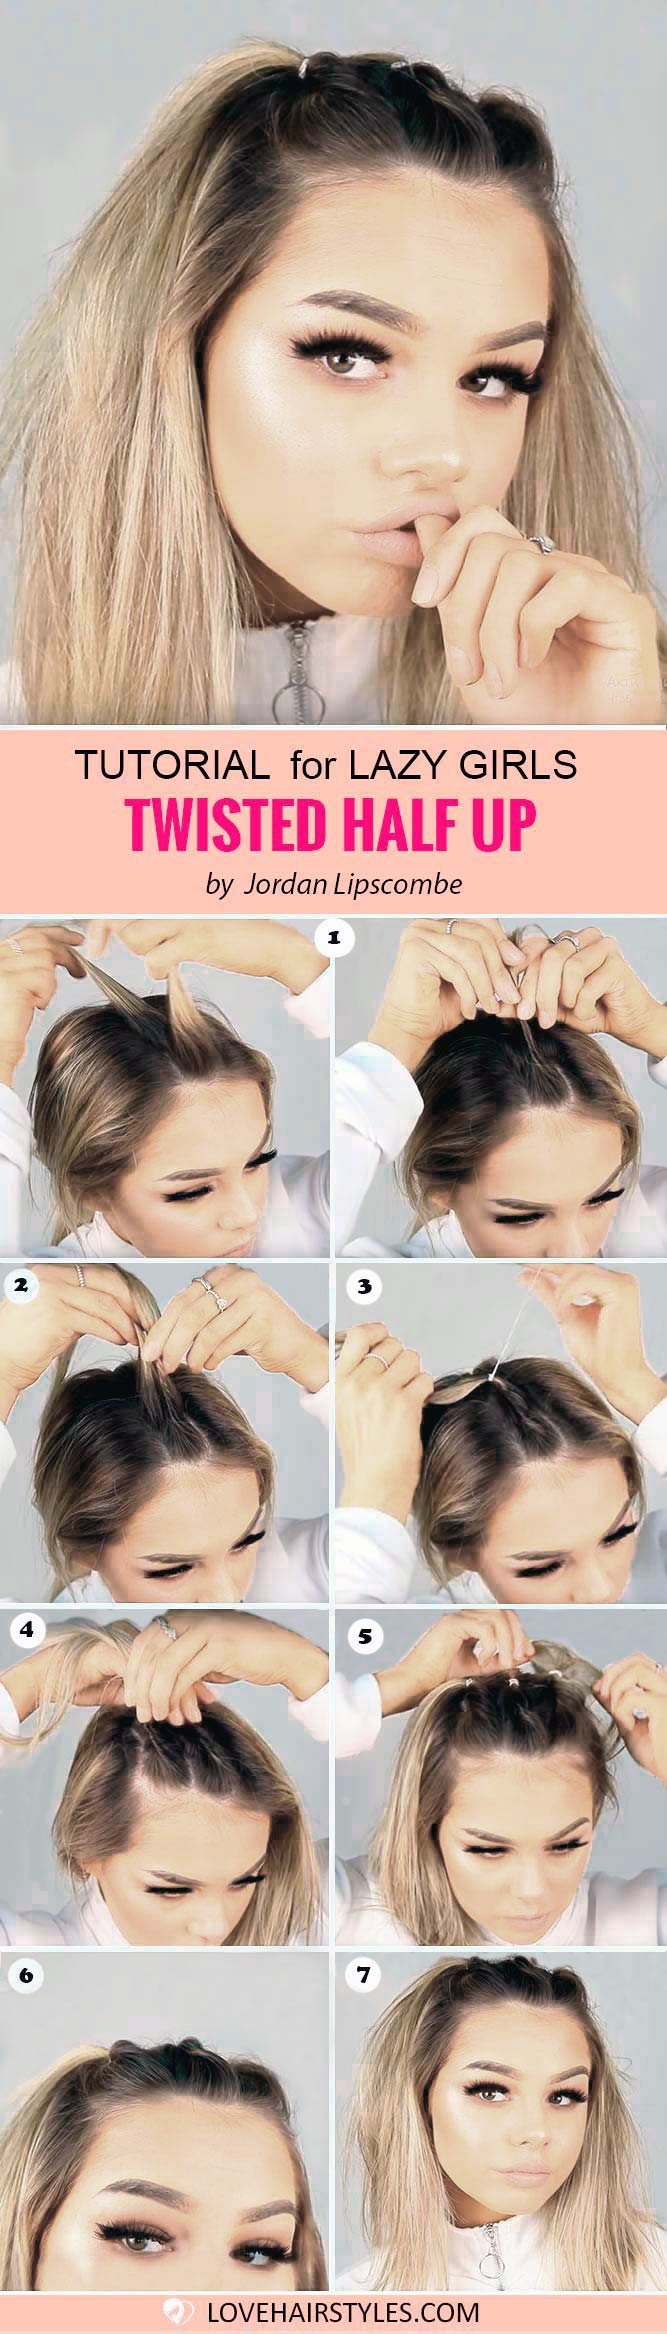 11 Perfectly Easy Hairstyles For Medium Hair  LoveHairStyles